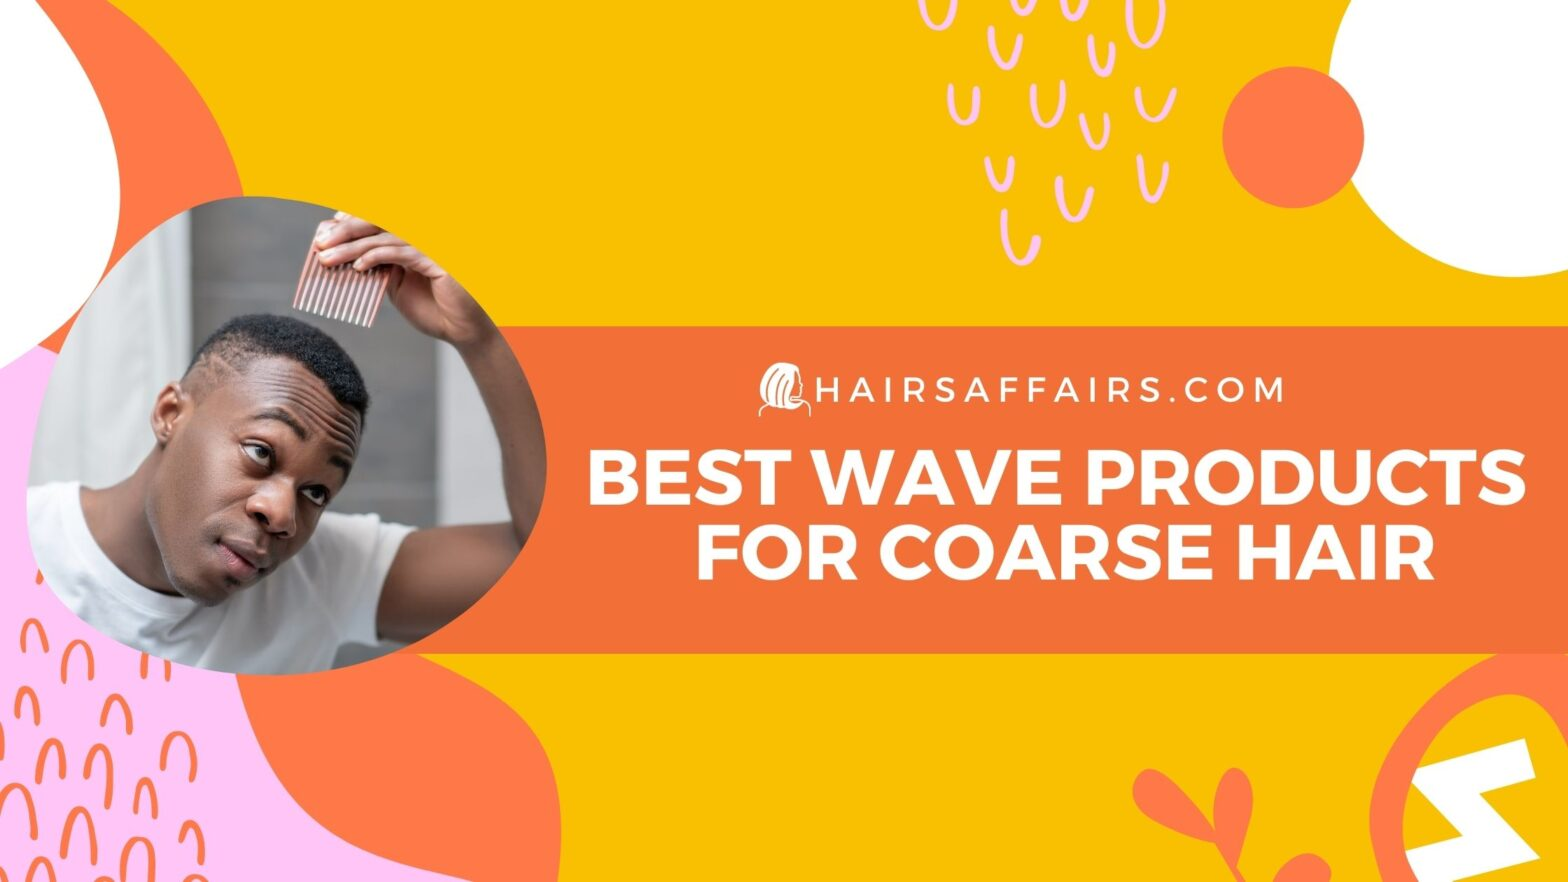 HA-best-wave-products-for-coarse-hair